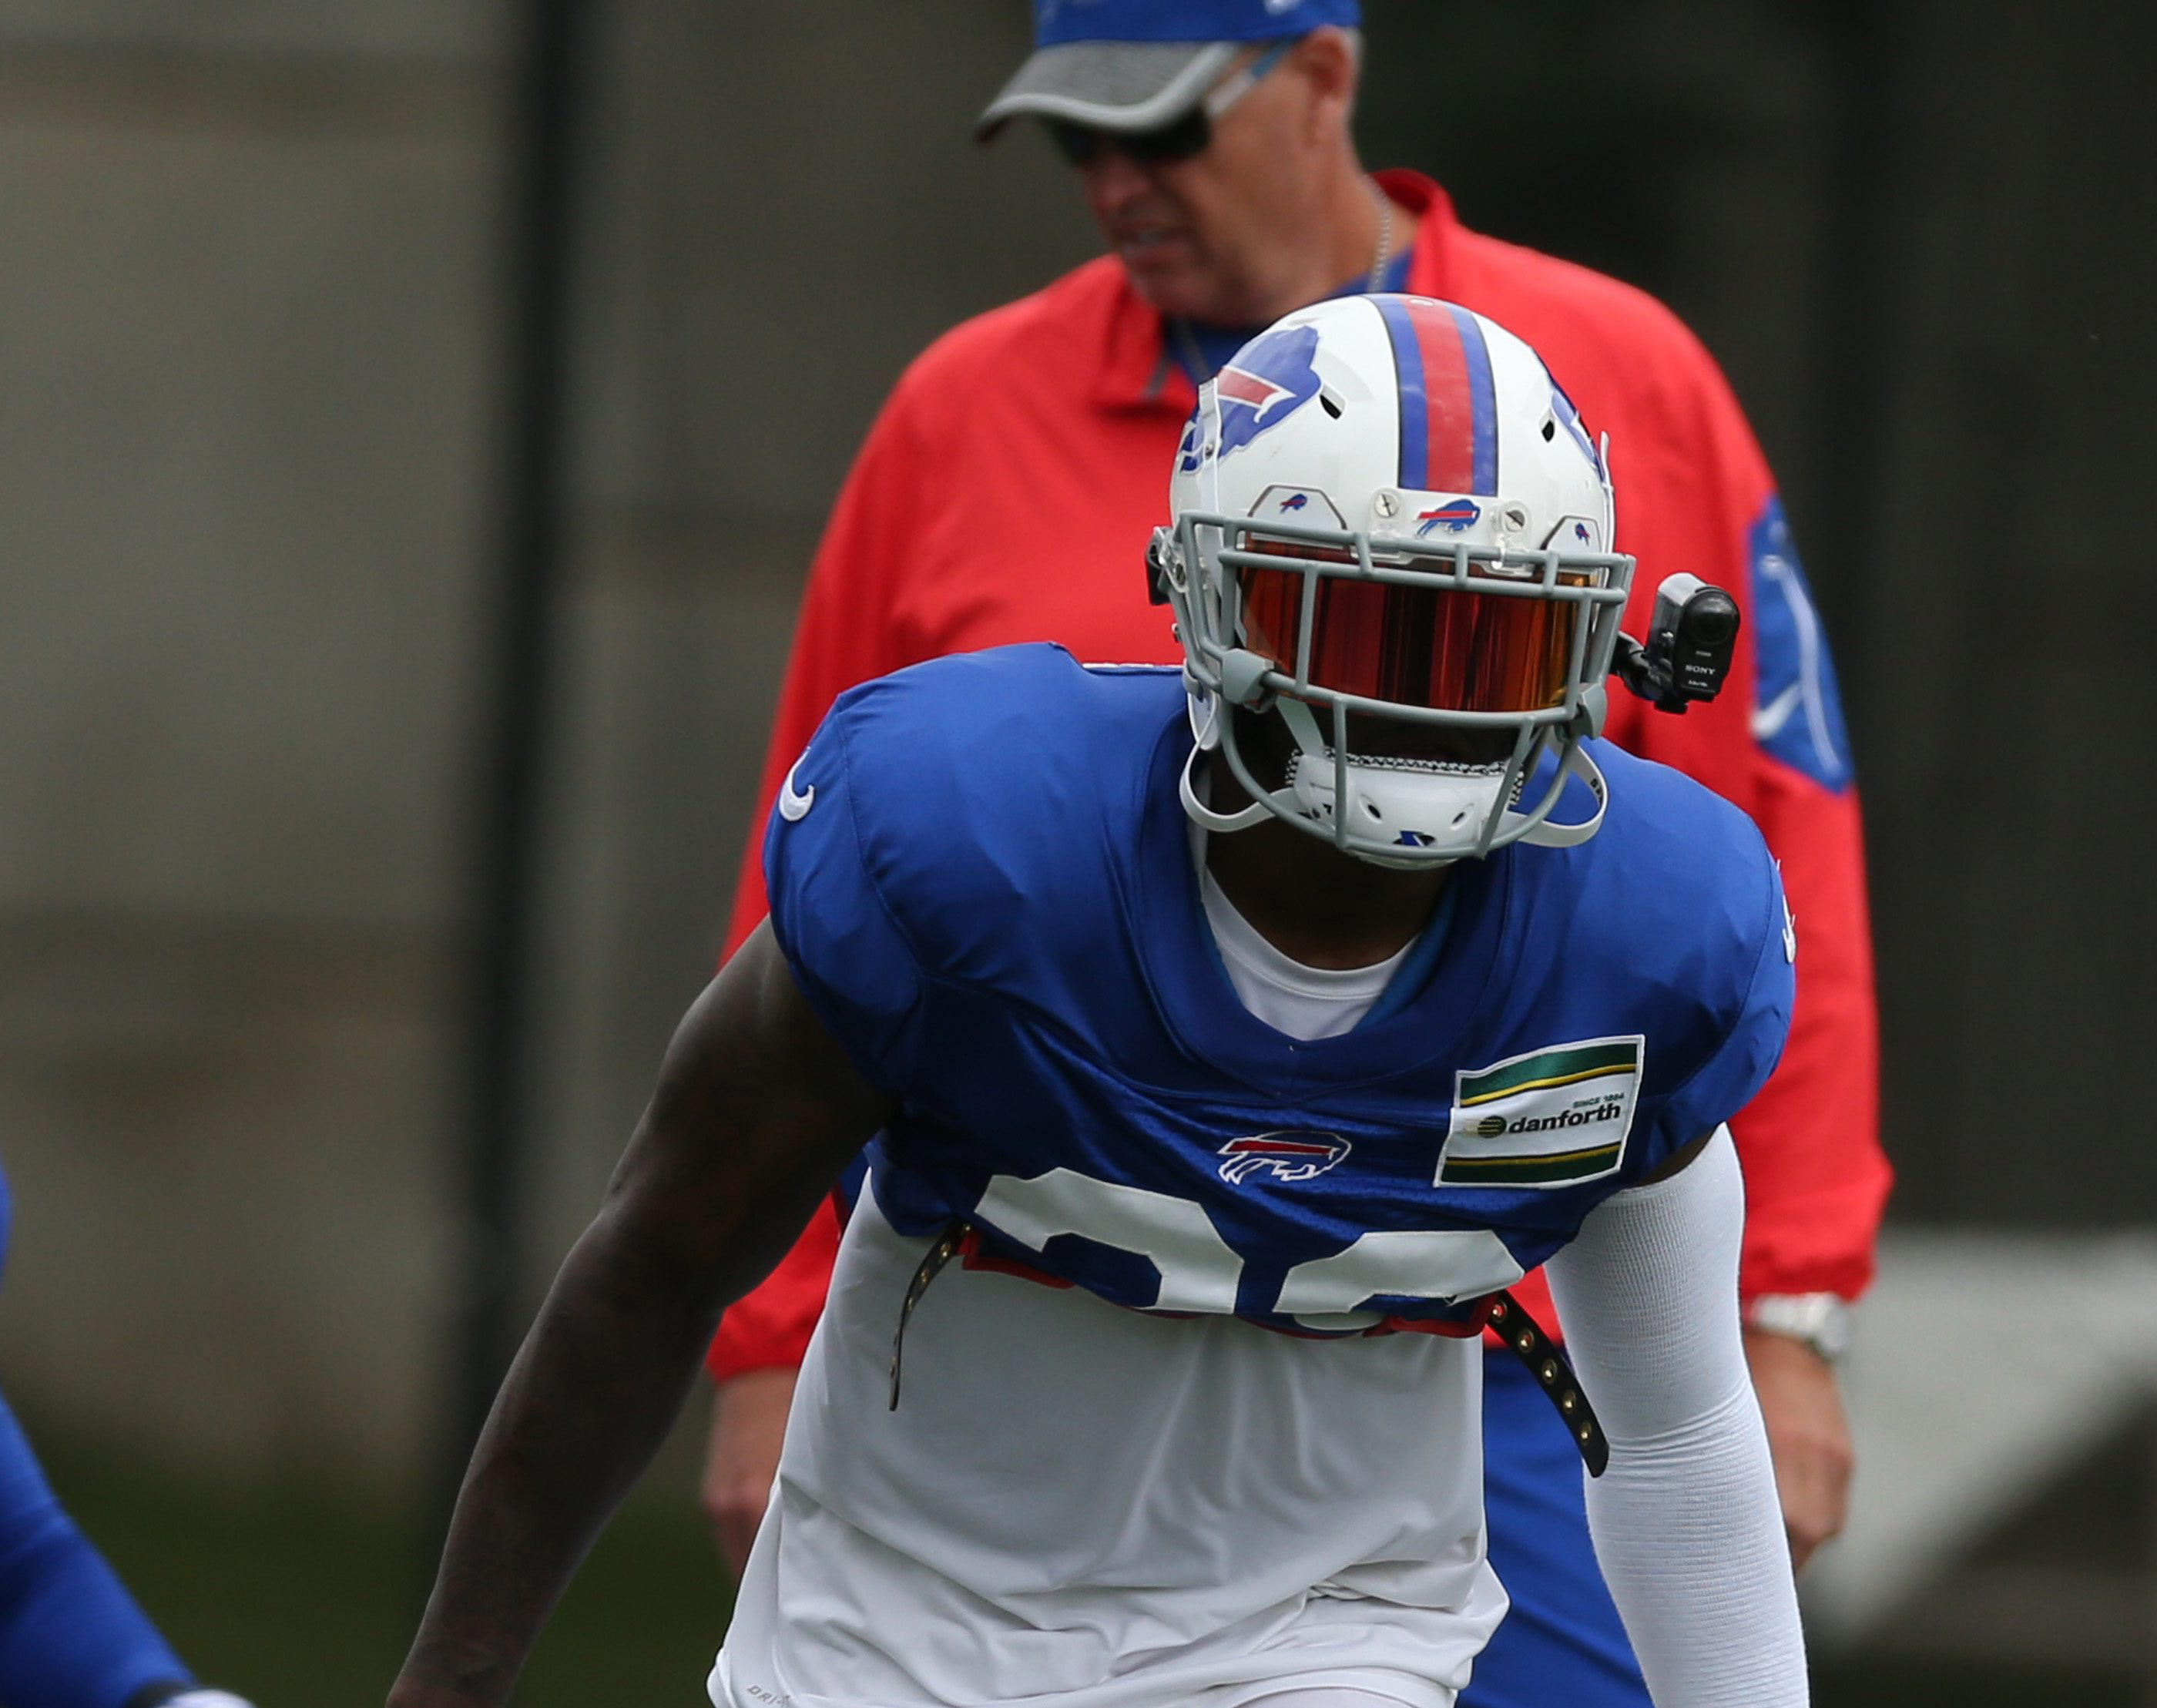 Bills safety Aaron Williams said he'll take a cautious approach as he returns from a neck injury that ended his 2015 season. (James P. McCoy/ Buffalo News)